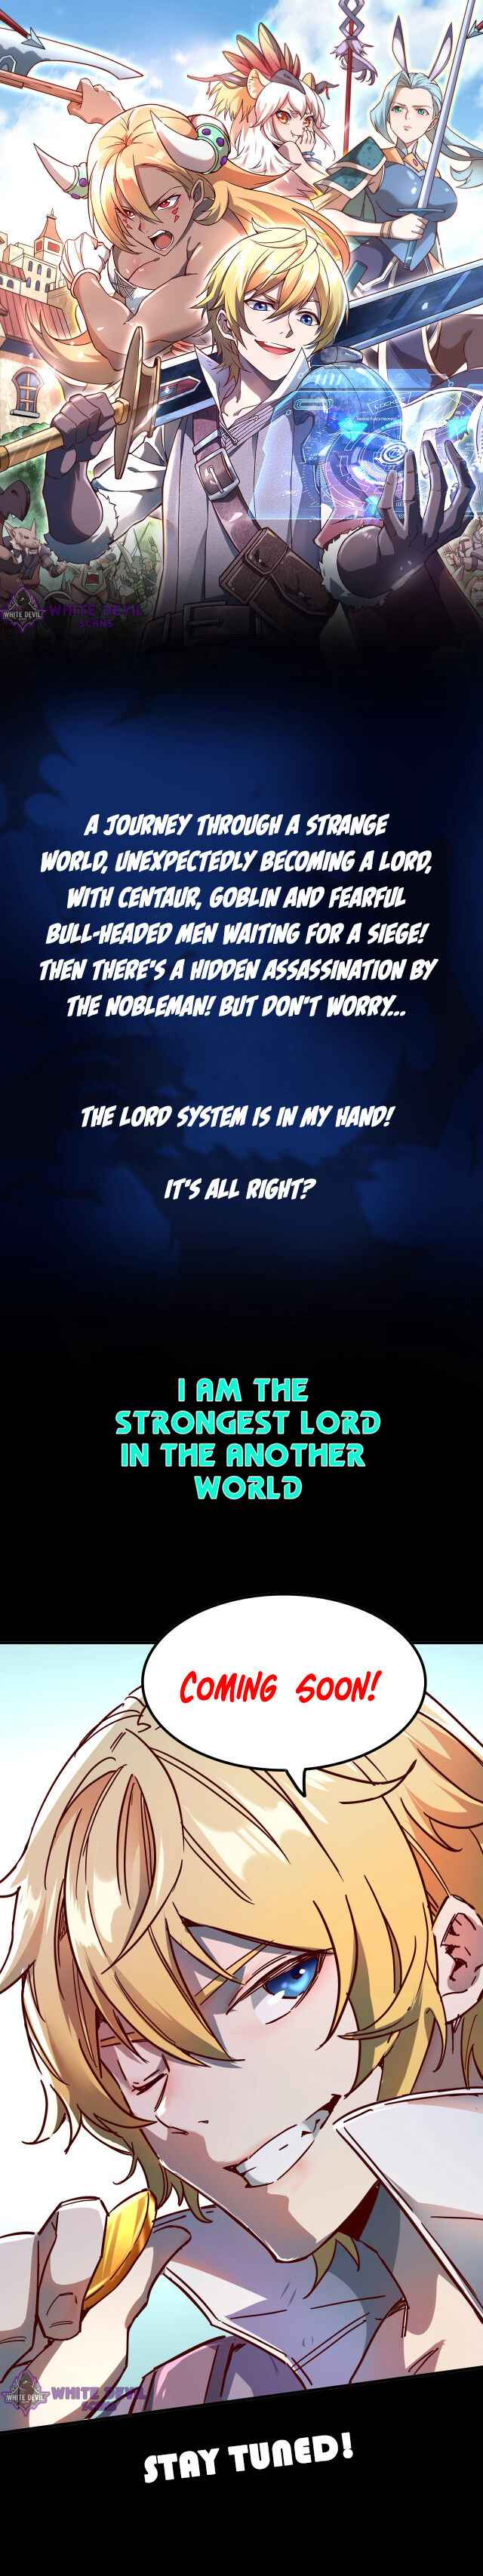 I am the Strongest Lord in Another World - chapter 0-eng-li